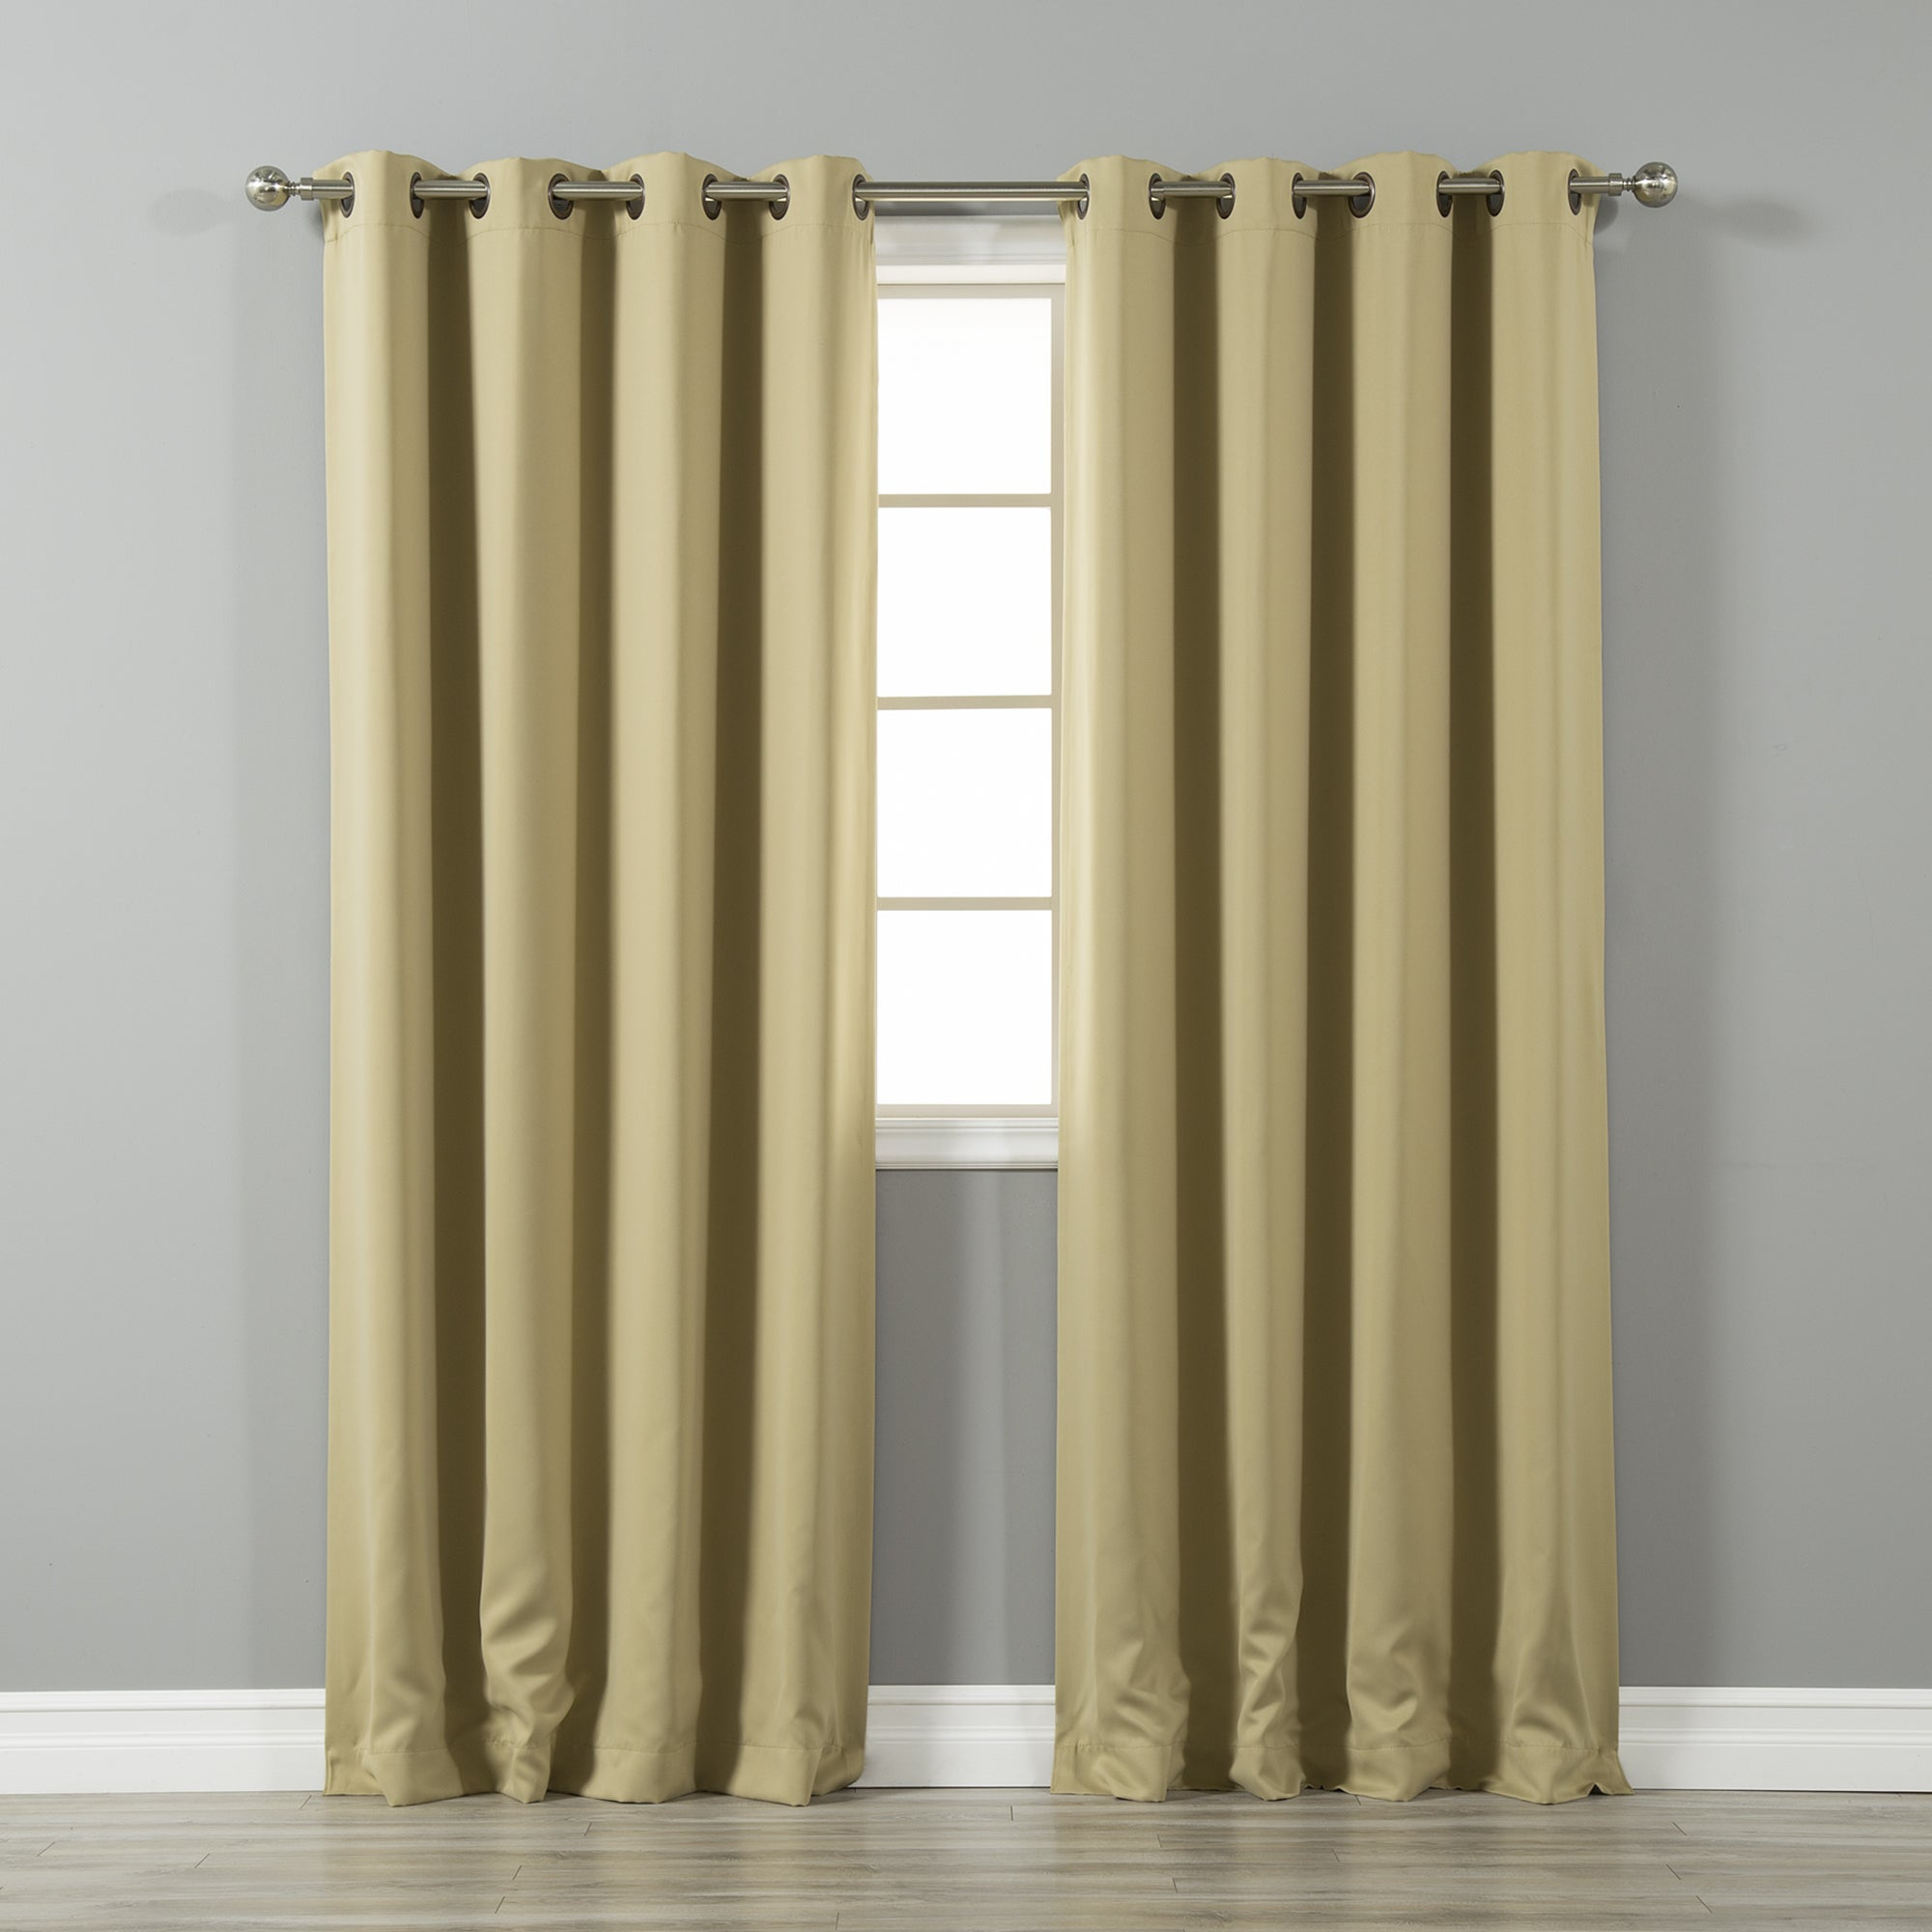 Grommet Thermal Insulated Drapes – Gala Bakken Design In Silvertone Grommet Thermal Insulated Blackout Curtain Panel Pairs (View 23 of 30)